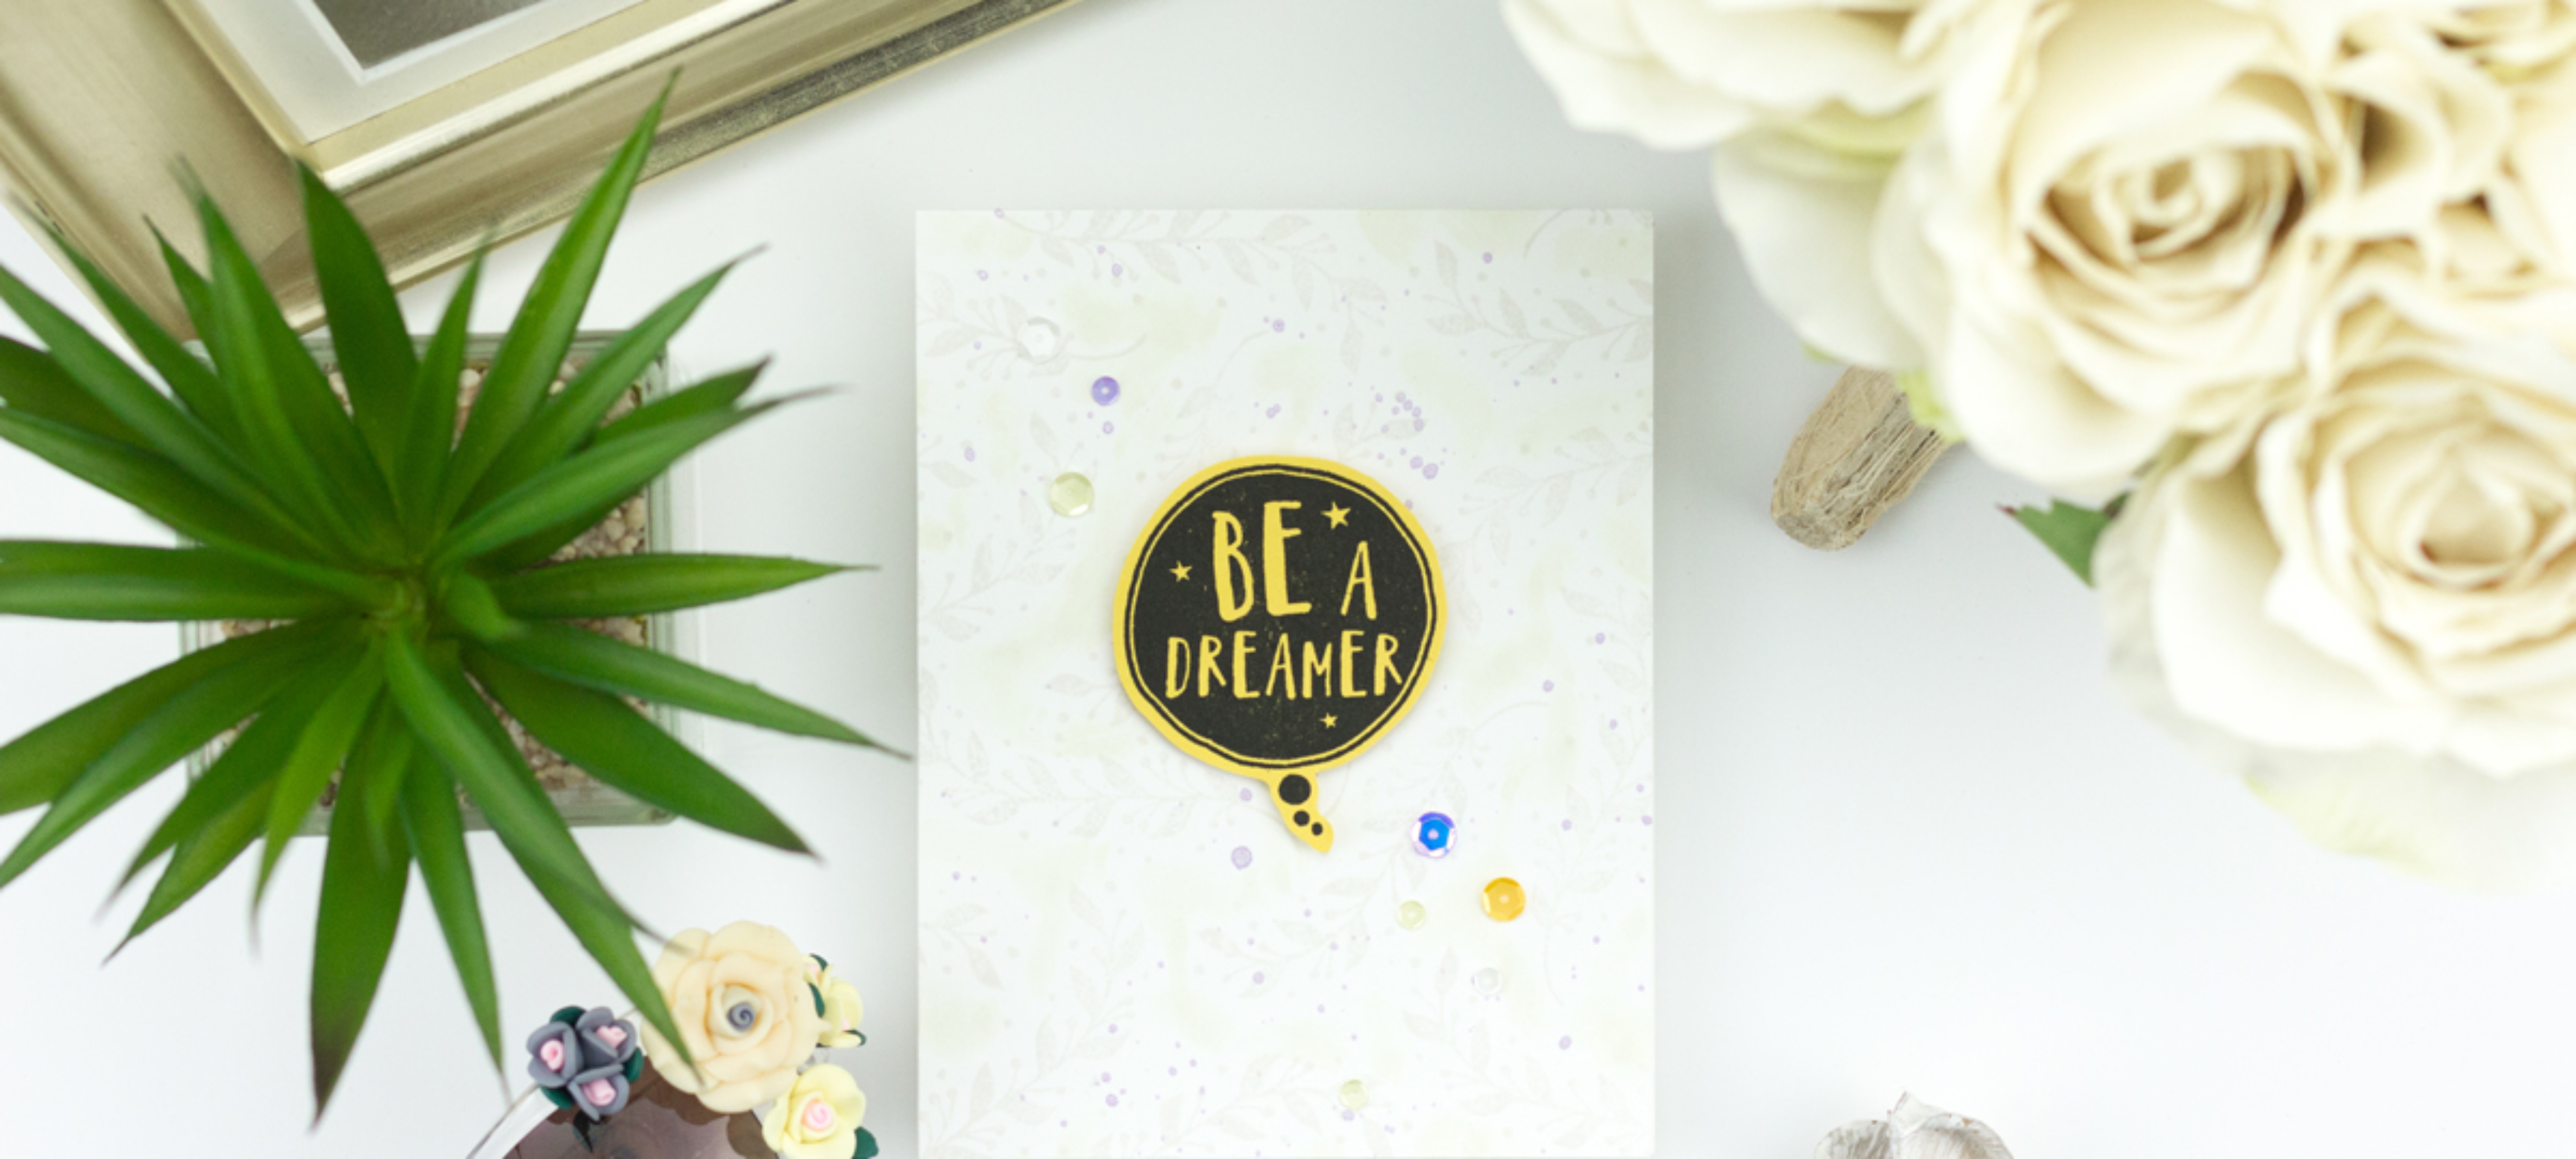 Dream & Believe Encouragement Cards - Altenew's 3rd Anniversary Blog Hop And A Giveaway!